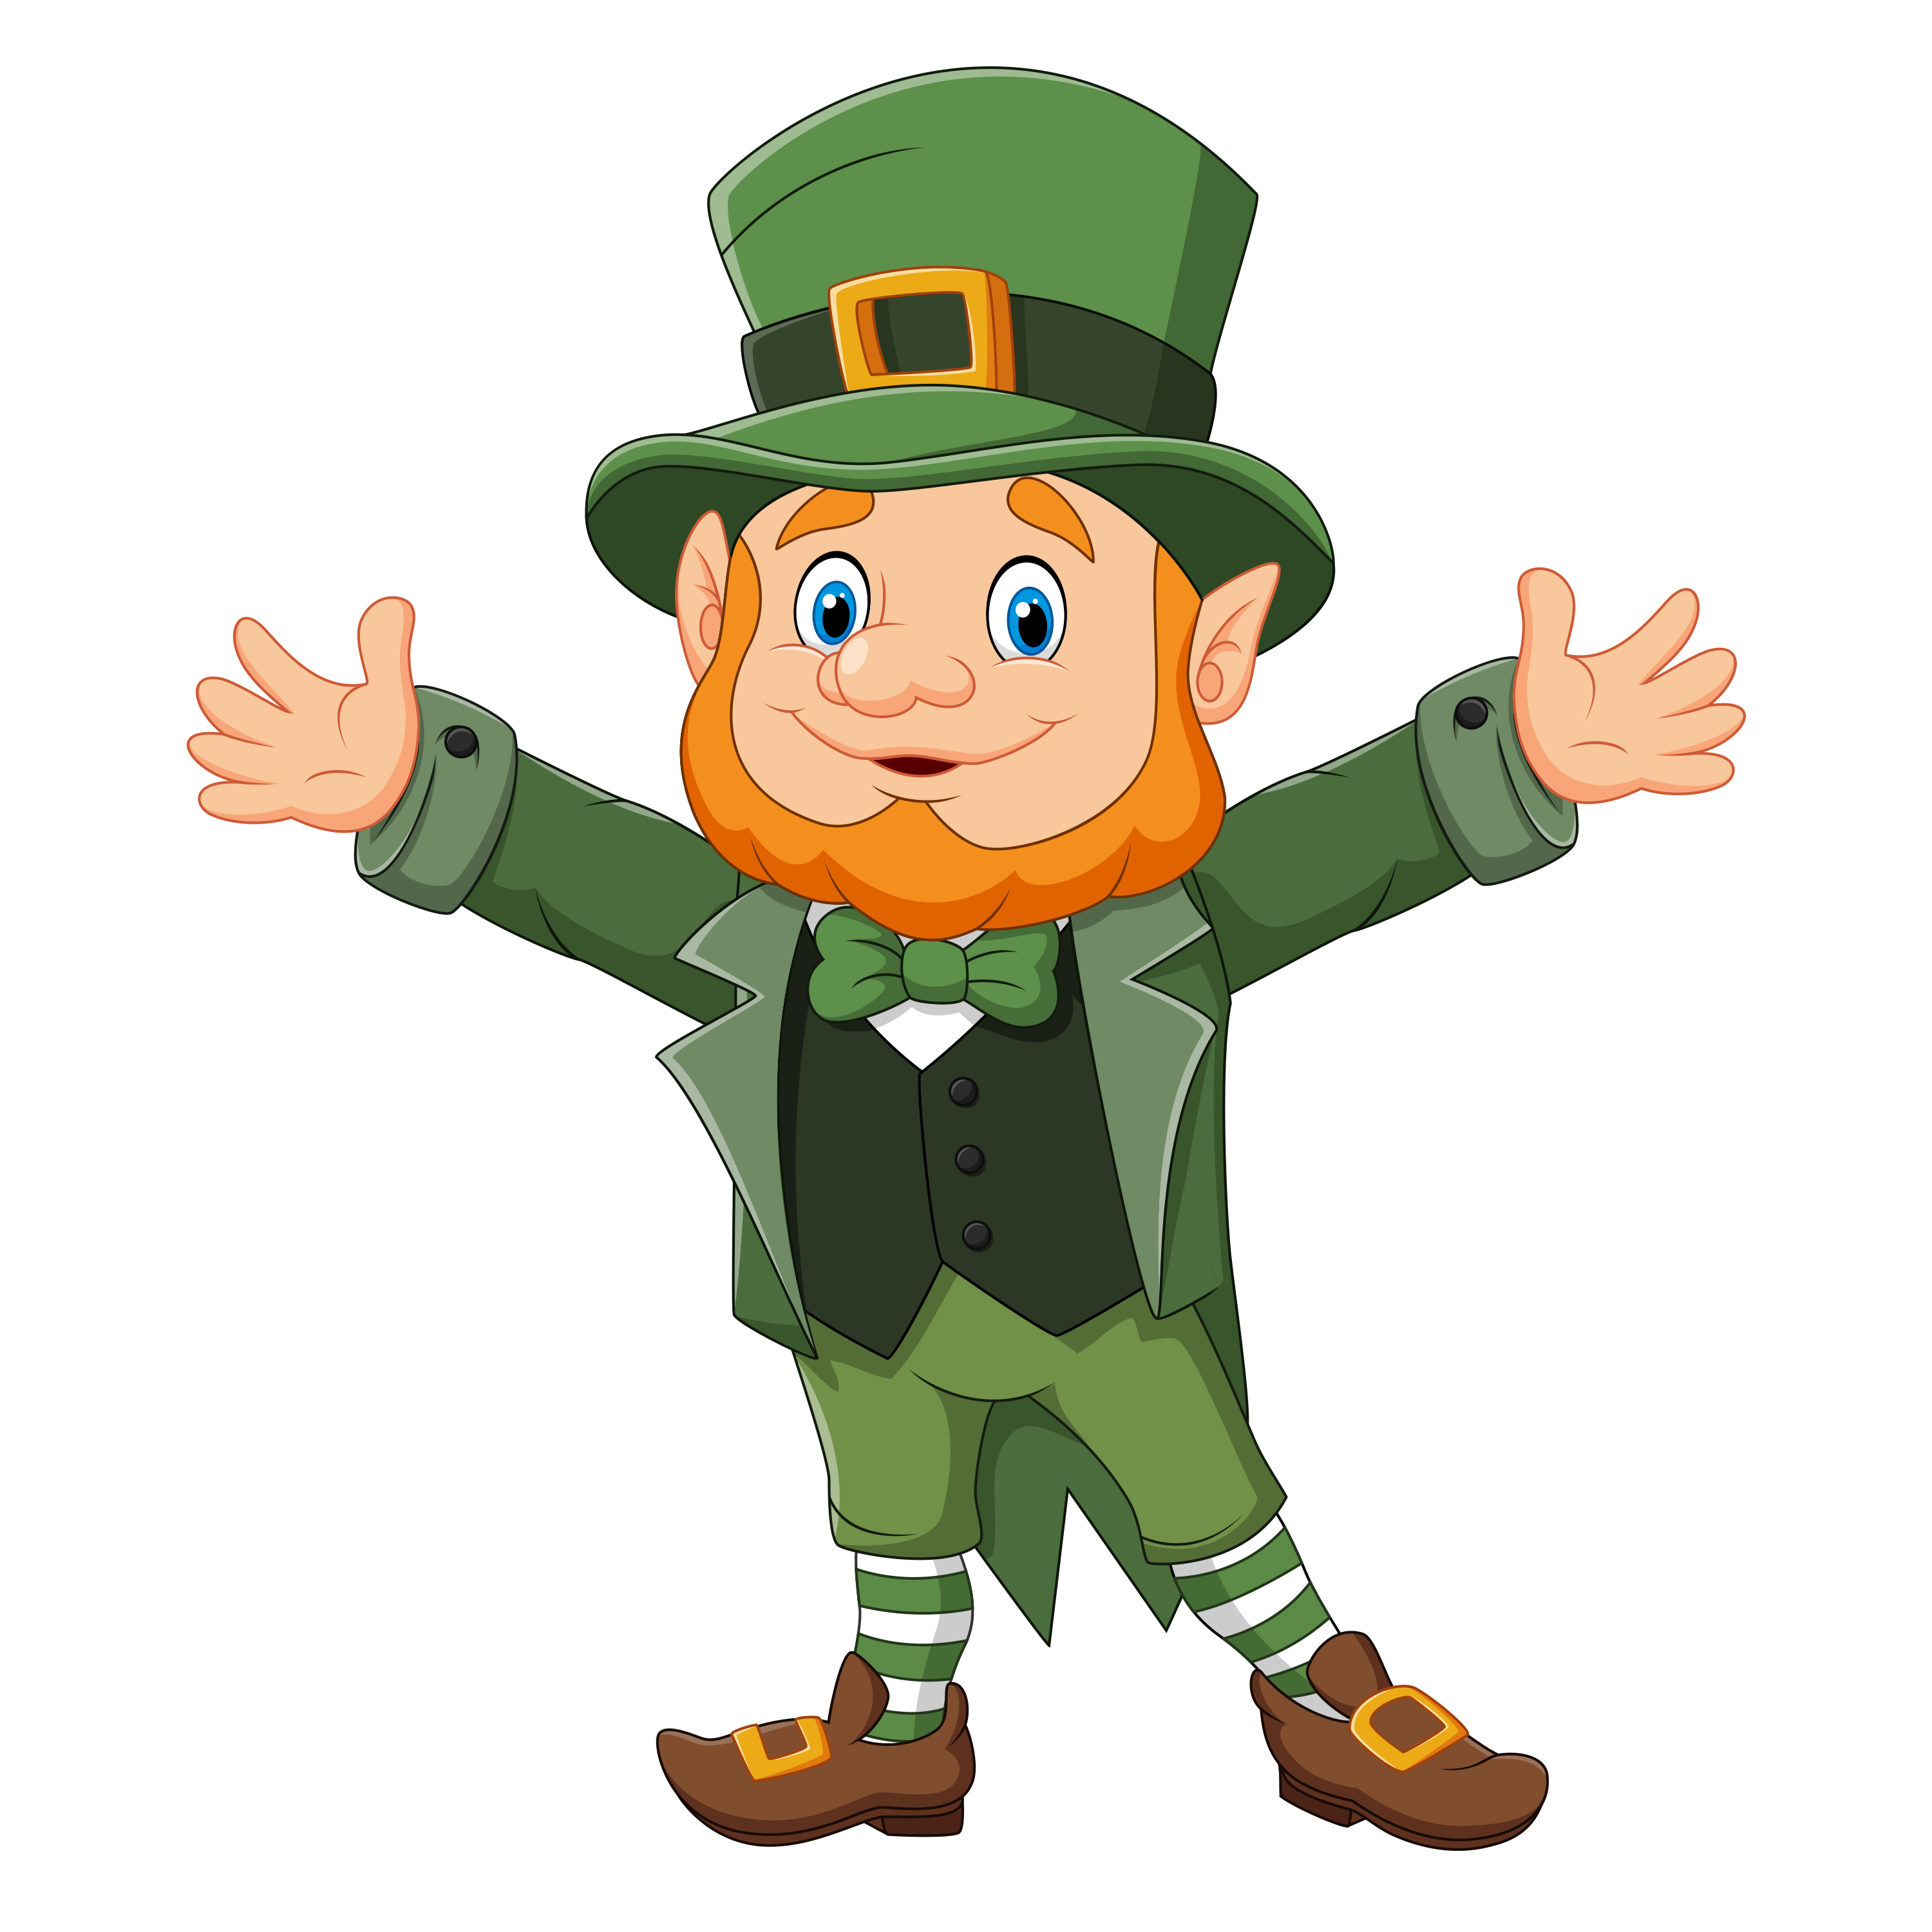 Animated leprechaun clipart images gallery for free download.